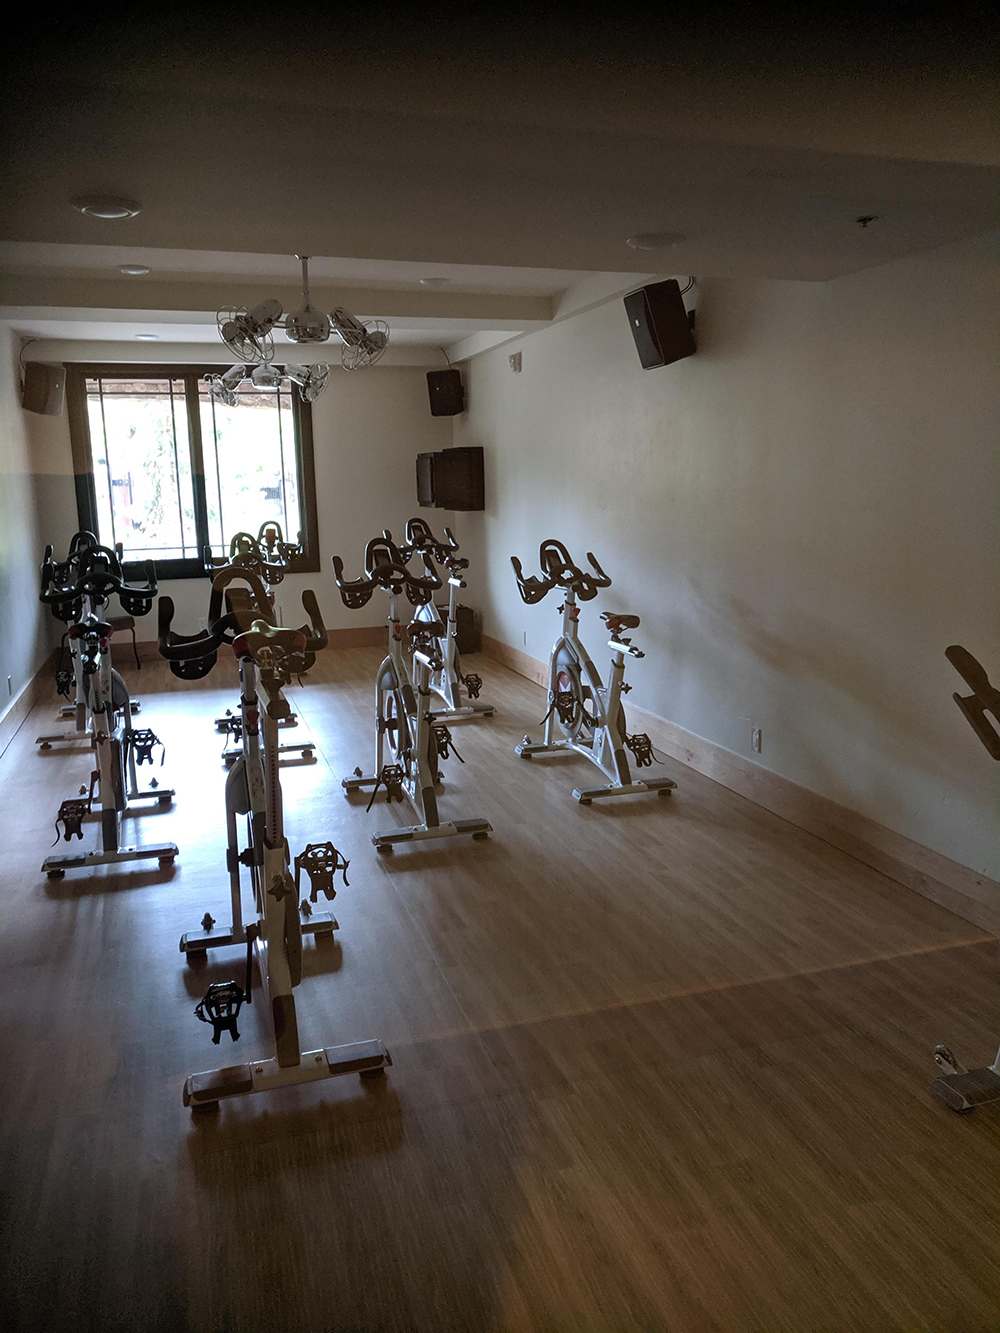 Newly remodeled, the fitness center has a large array of equipment, including a spinning room.